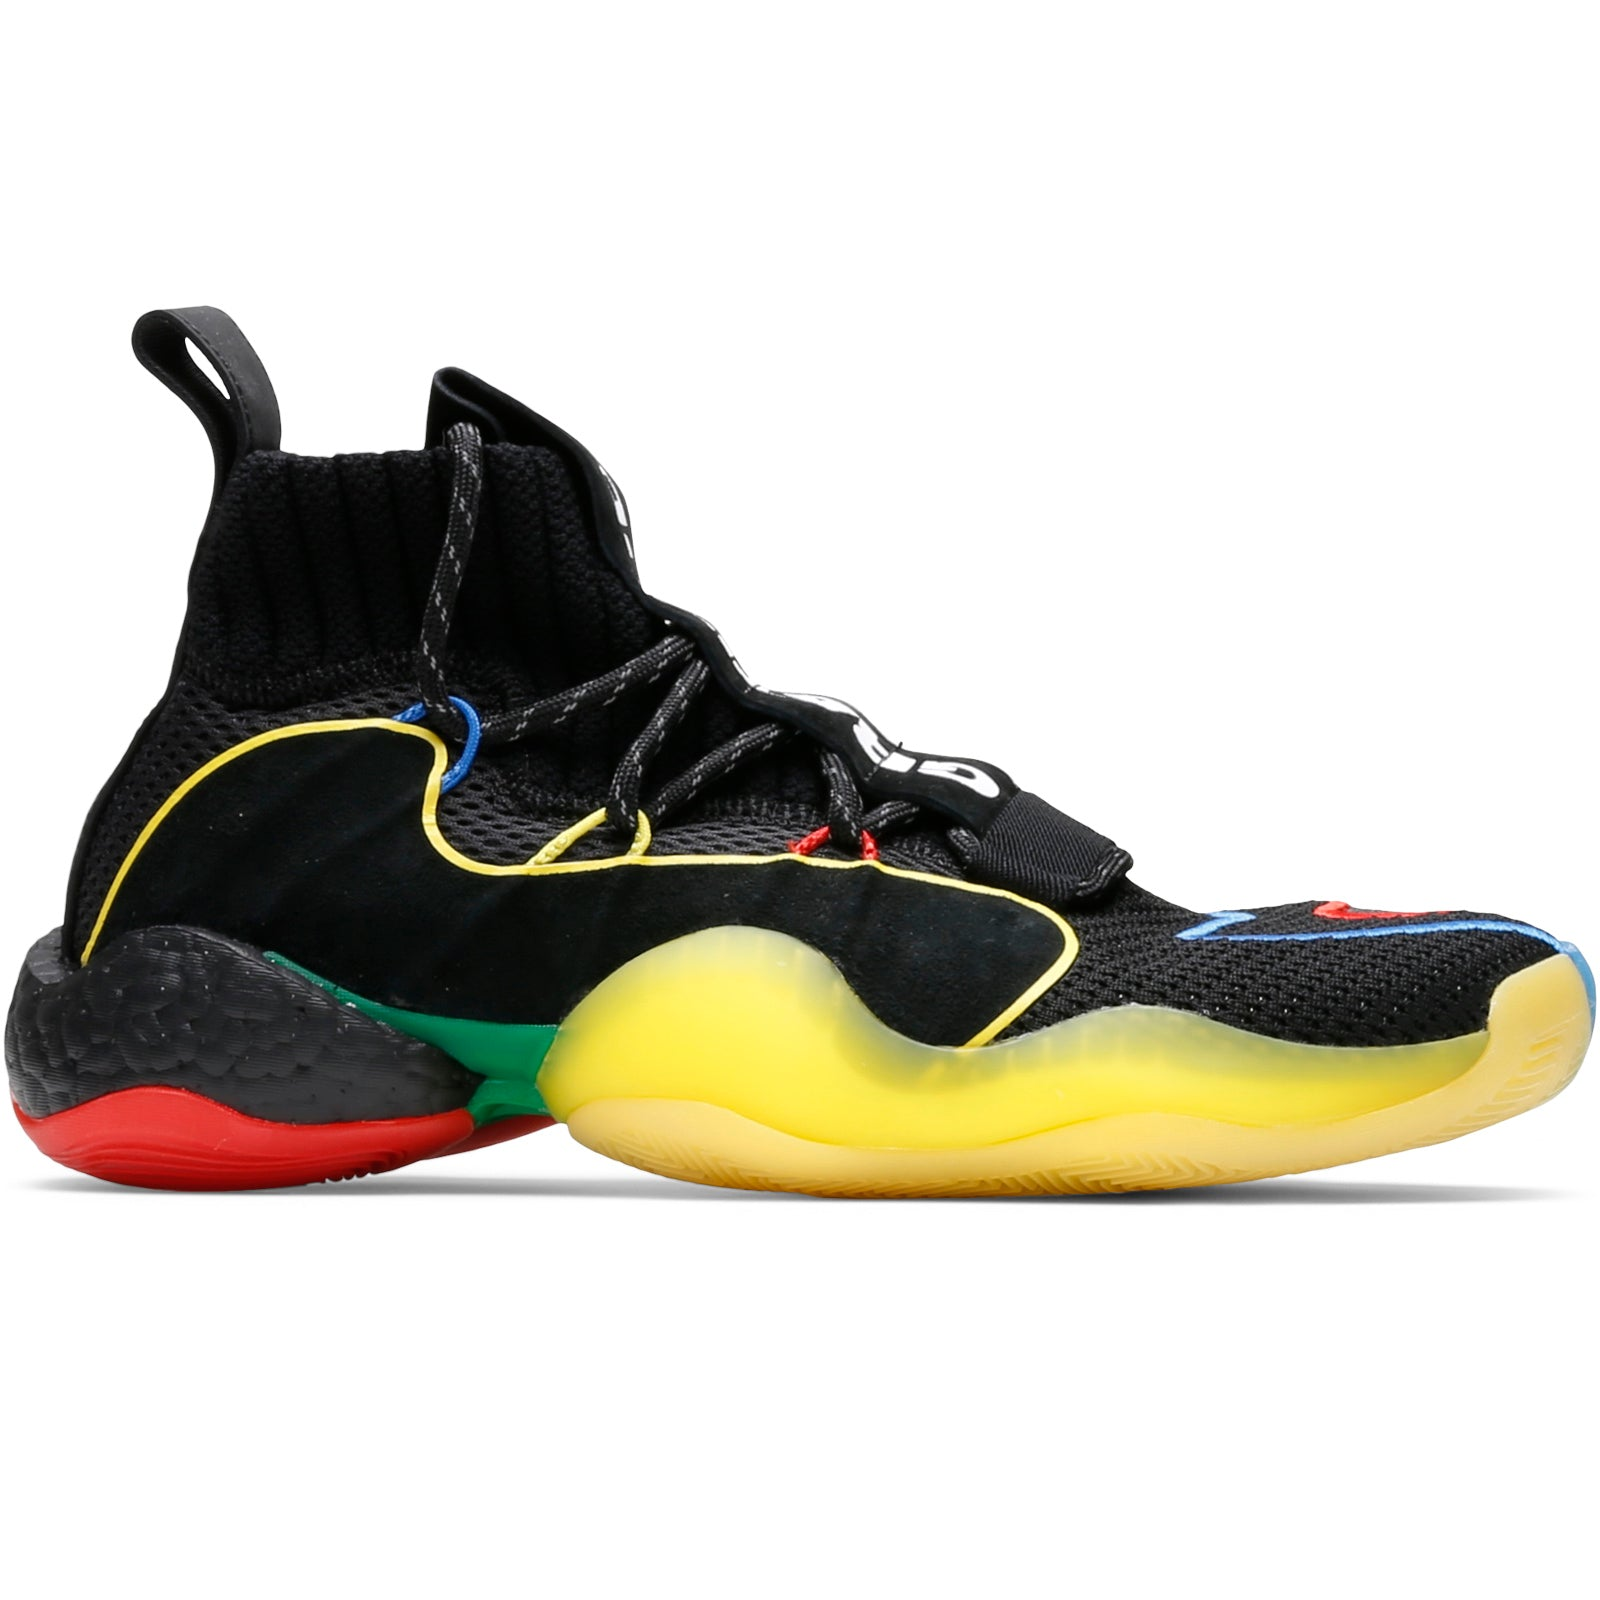 check out 7140c b0f43 ... harkens back to the vintage 1990s era, equipping green, blue, yellow,  and red atop a primarily blacked out base. Adidas x Pharrell Williams Crazy  BYW ...